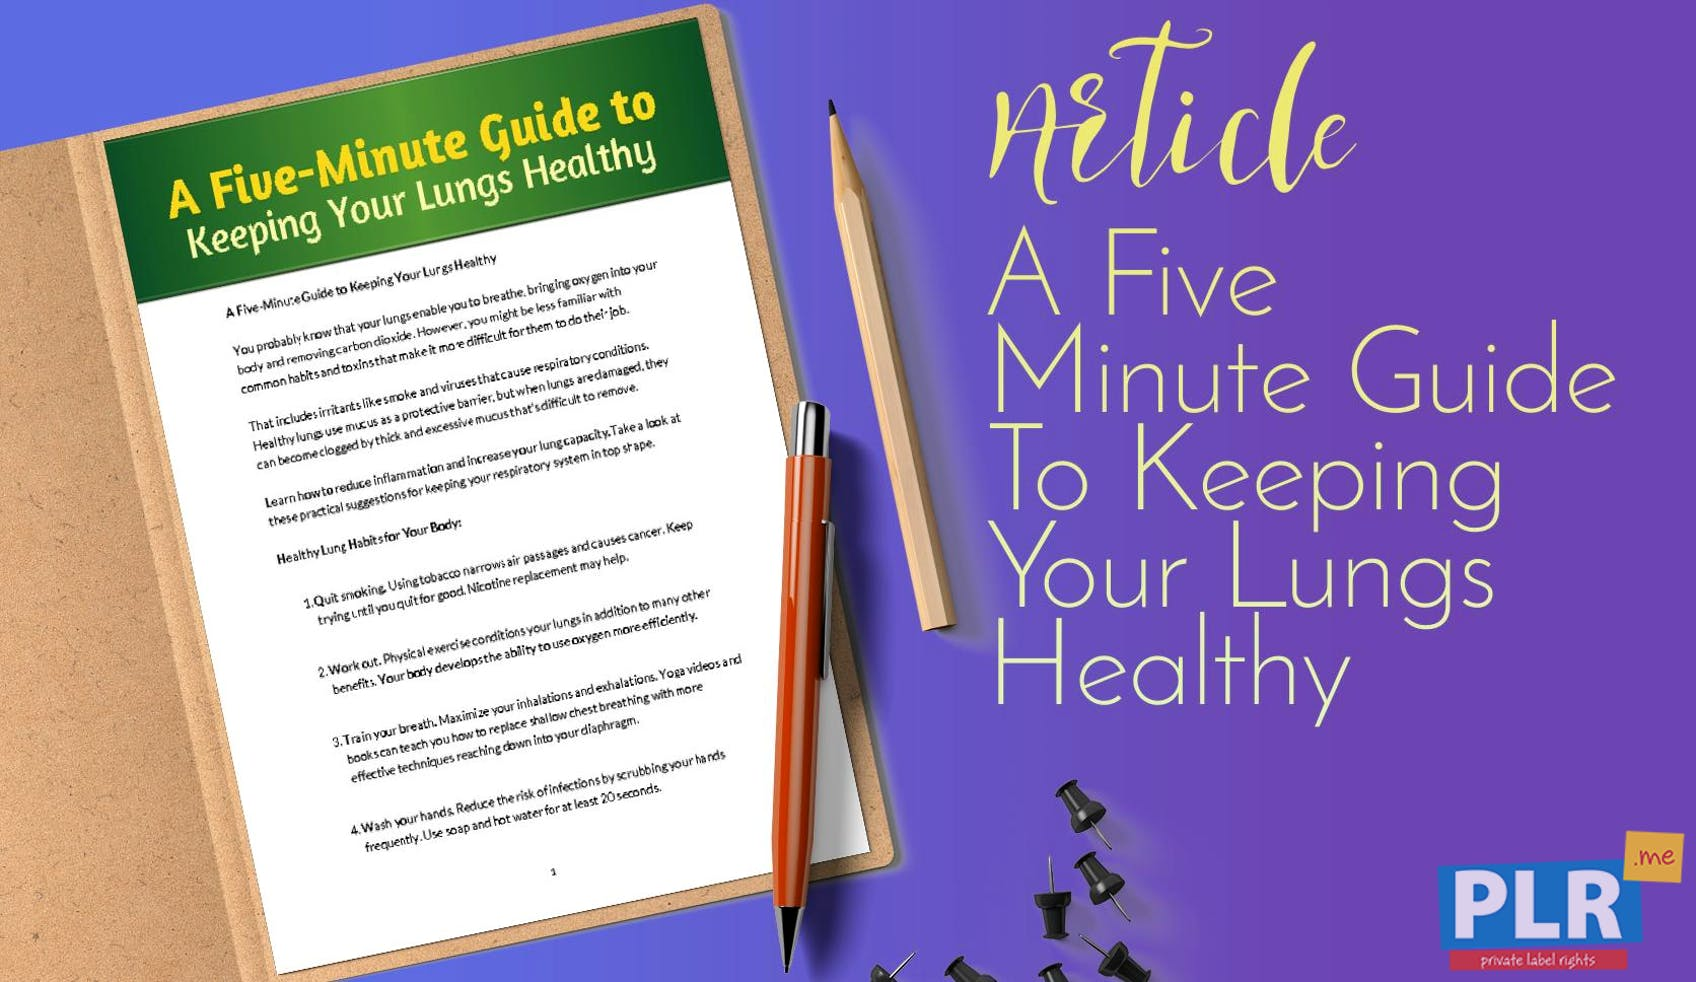 A Five Minute Guide To Keeping Your Lungs Healthy